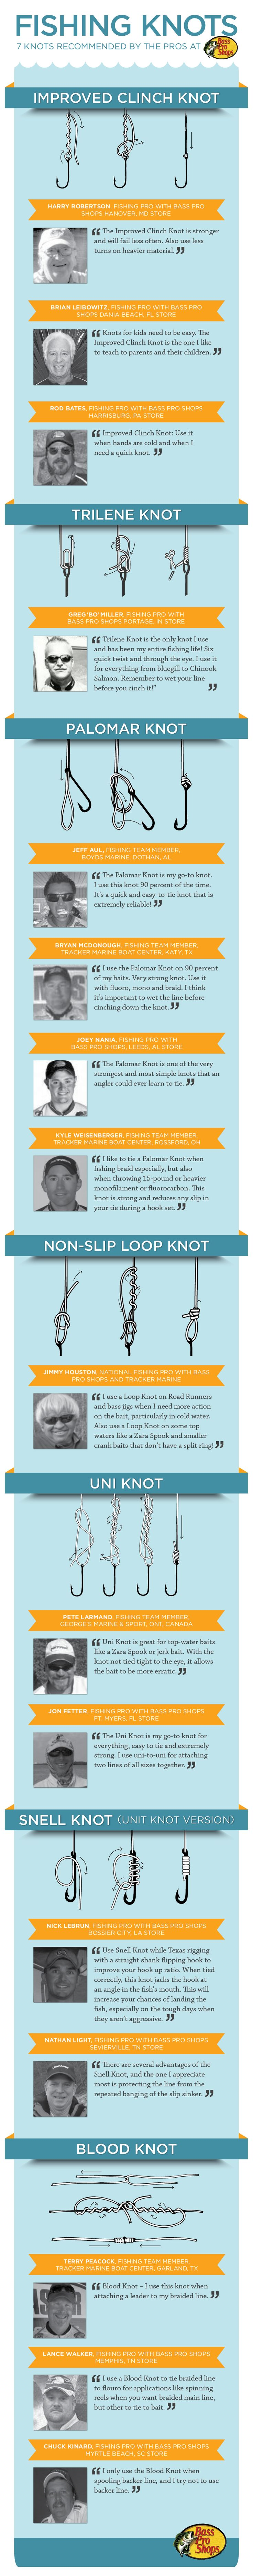 Fishing Knots - 7 Knots Recommended by the Pros at Bass Pro Shops